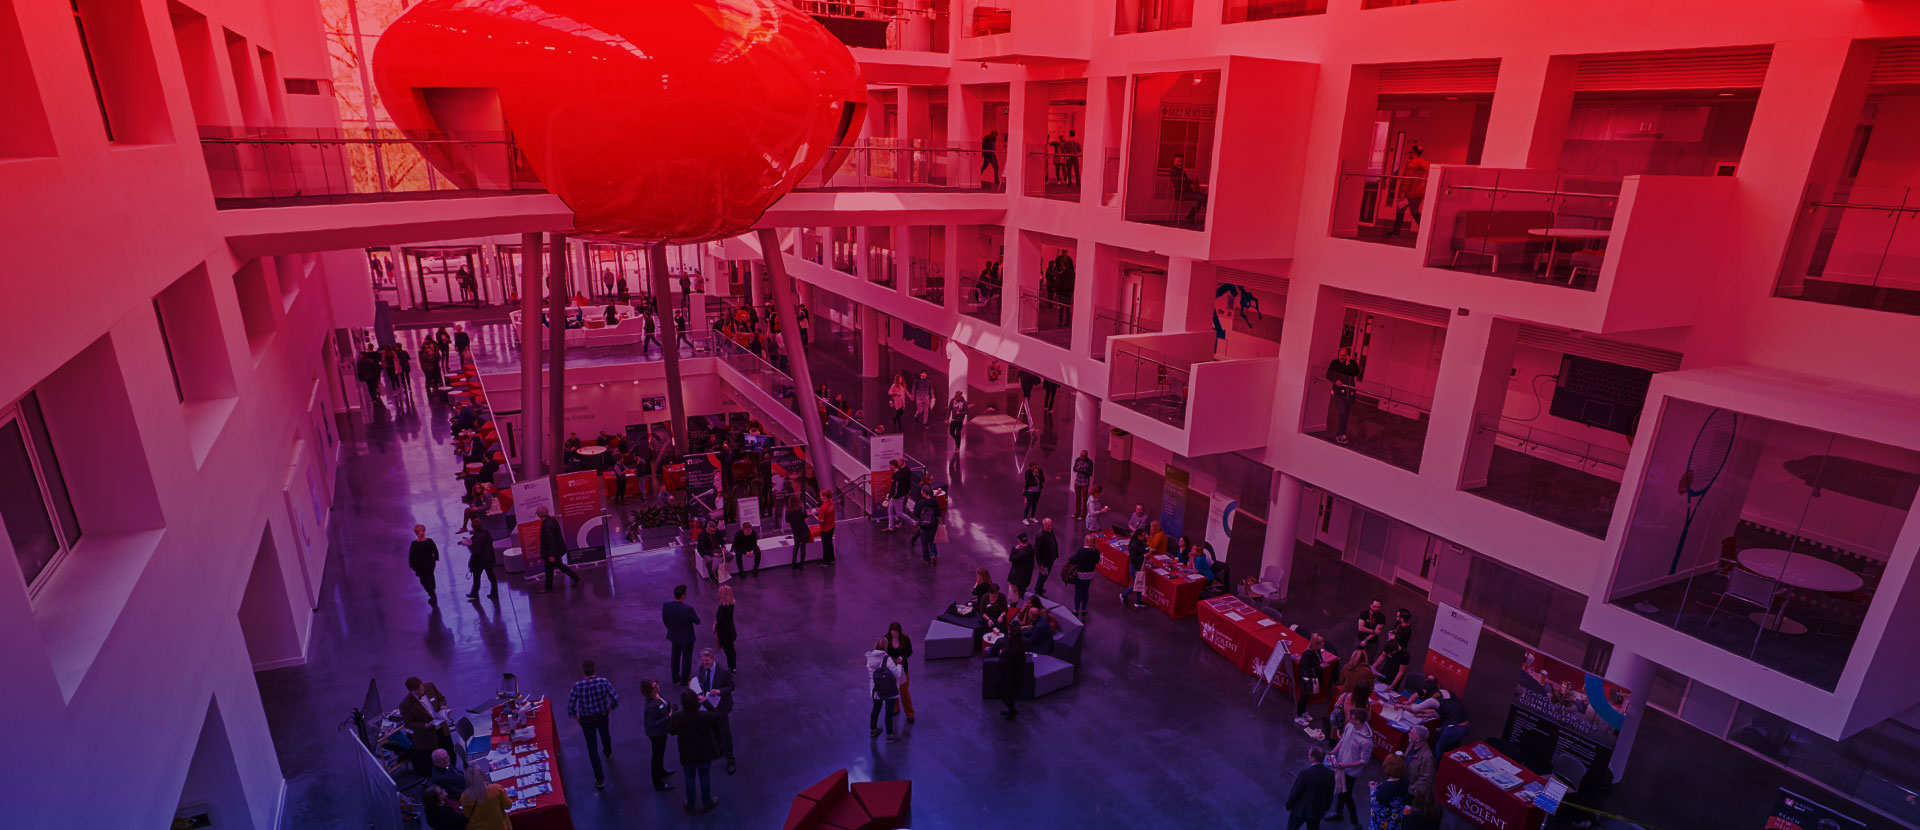 The Spark atrium and The Pod at Solent University